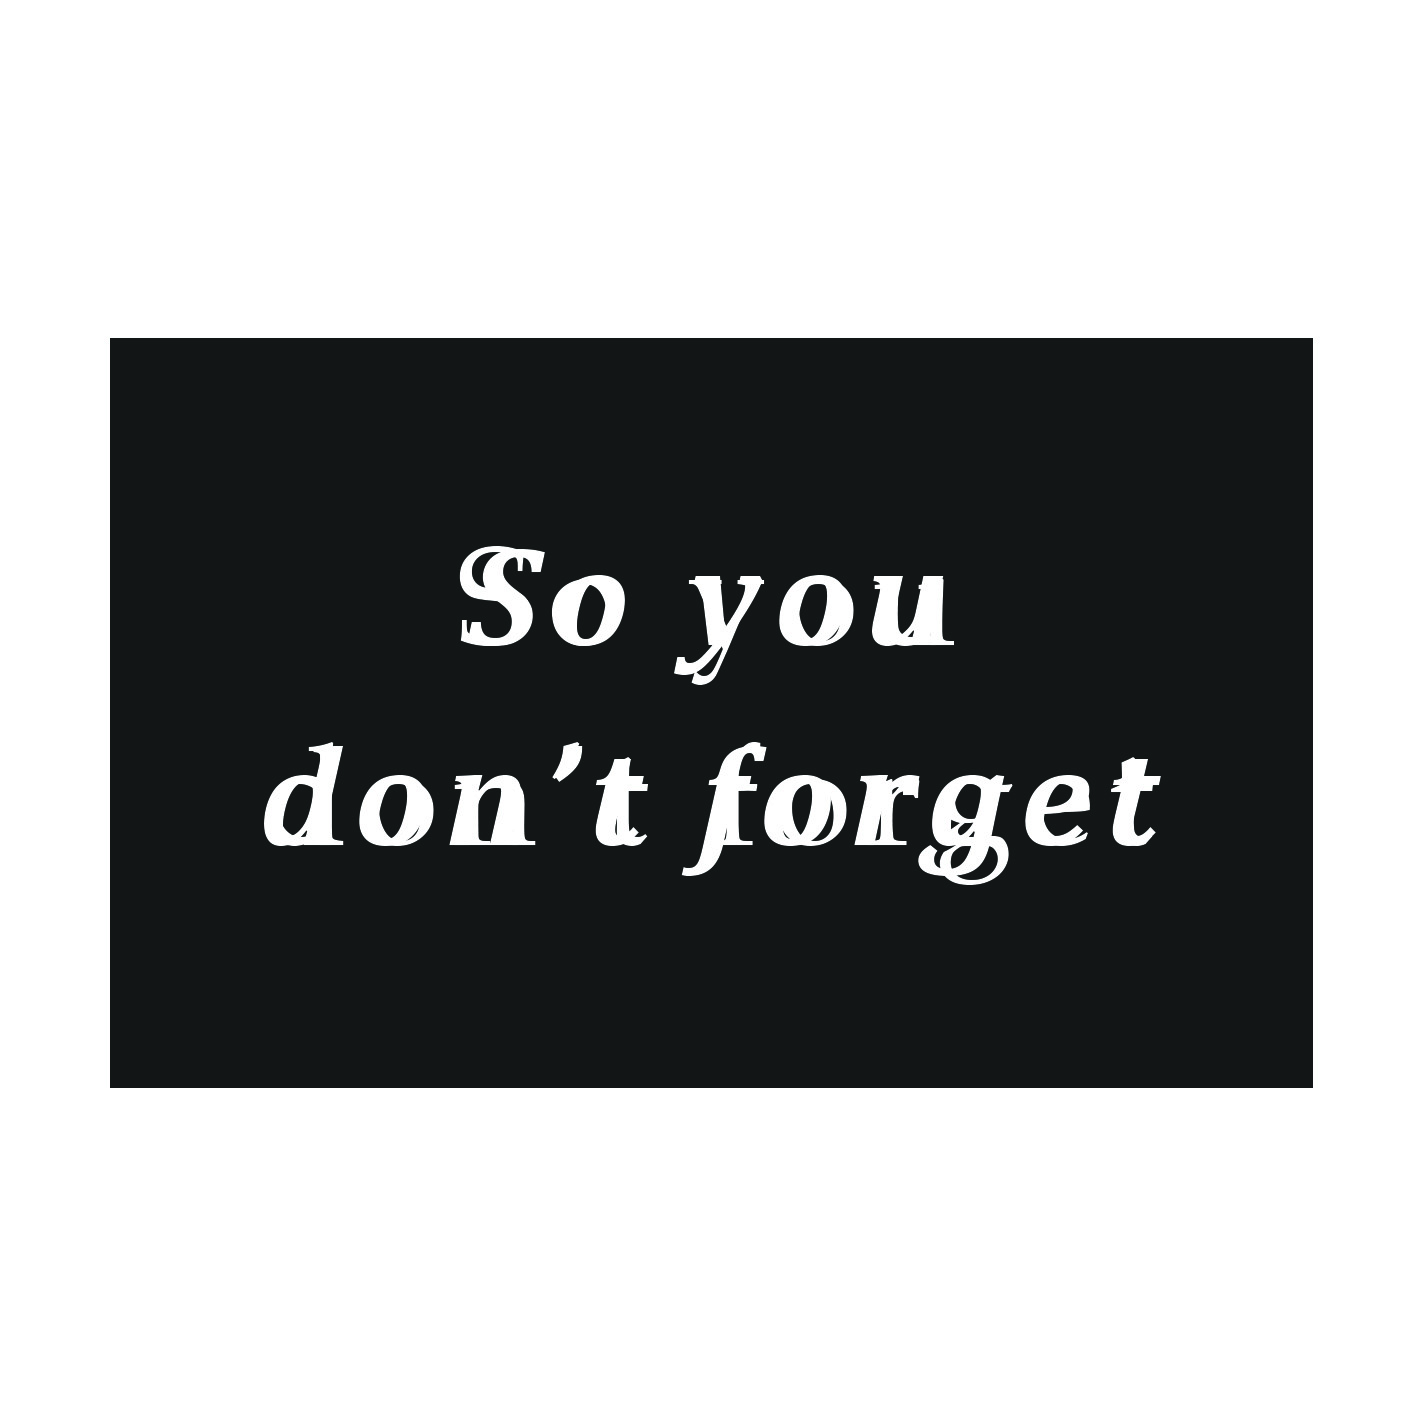 SO YOU DON'T FORGET